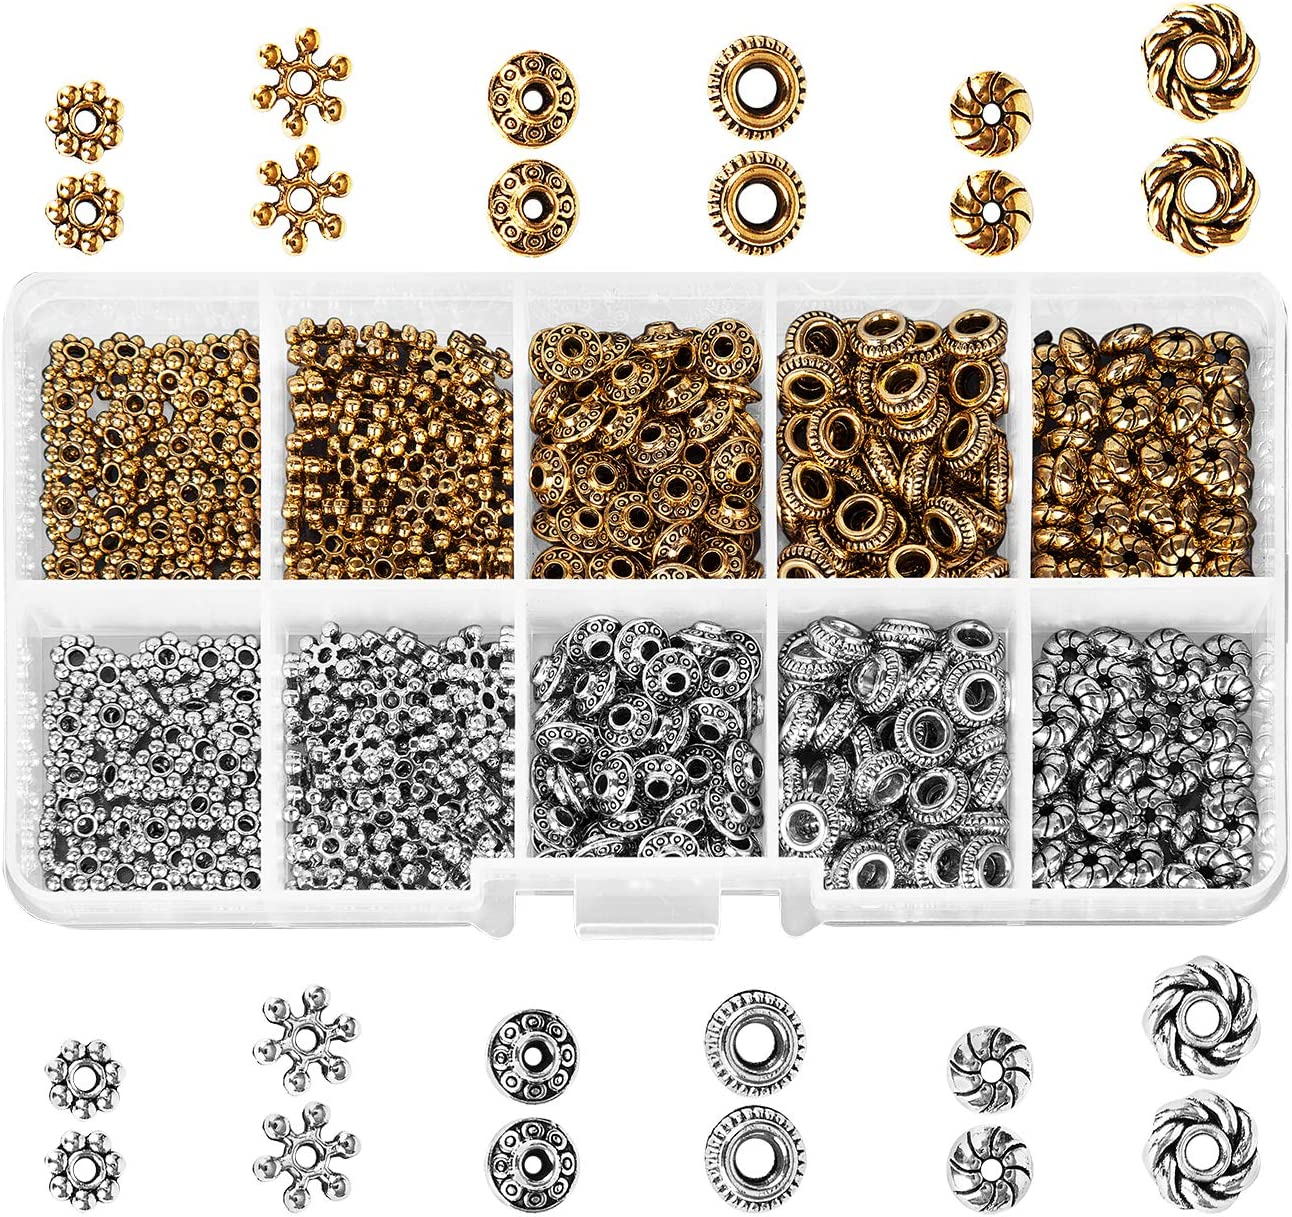 SILVER or BRONZE NEW 100 DESIGNS TIBETAN SPACER BEADS KIT JEWELRY MAKING /& BOX